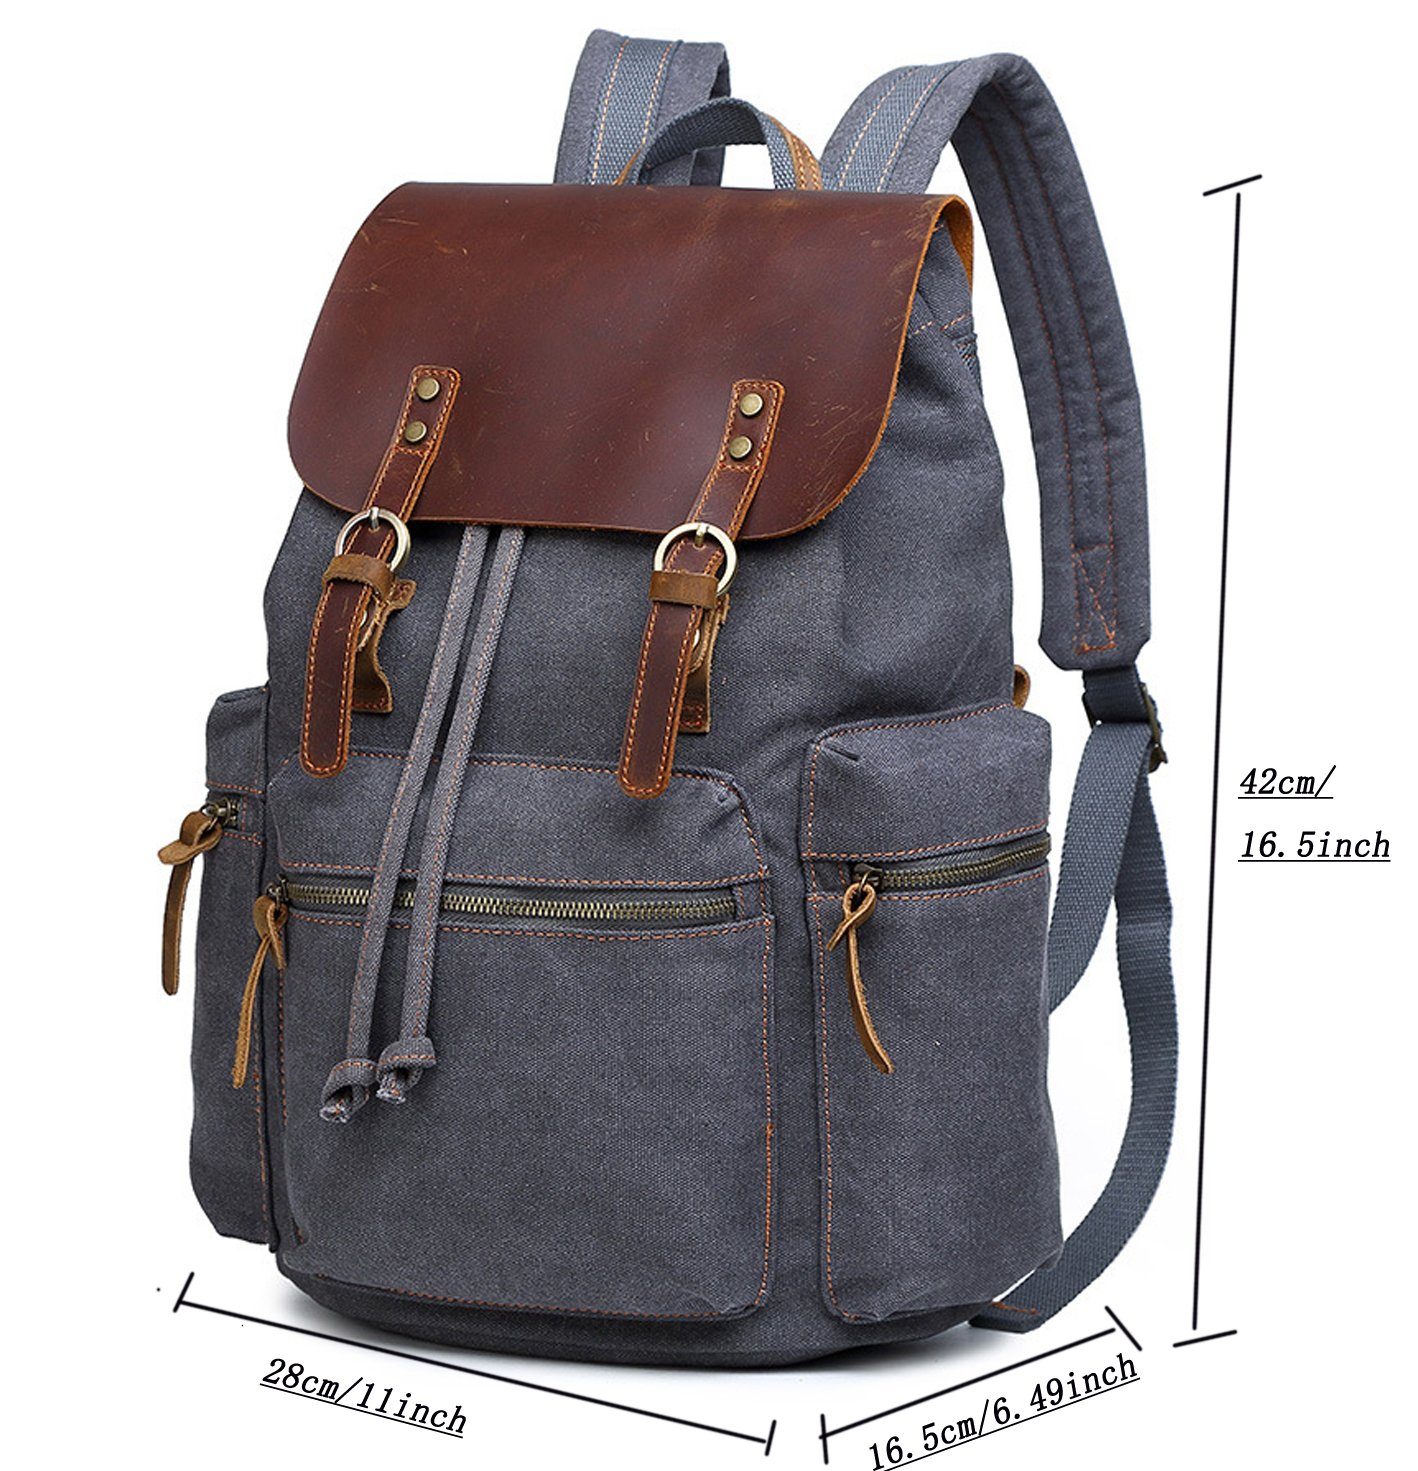 cd6900242f9a Berchirly Vintage Men Casual Canvas Leather Backpack Rucksack Travel  Bookbag Satchel for School Outdoor Hiking/Climbing Backpack for Men Women